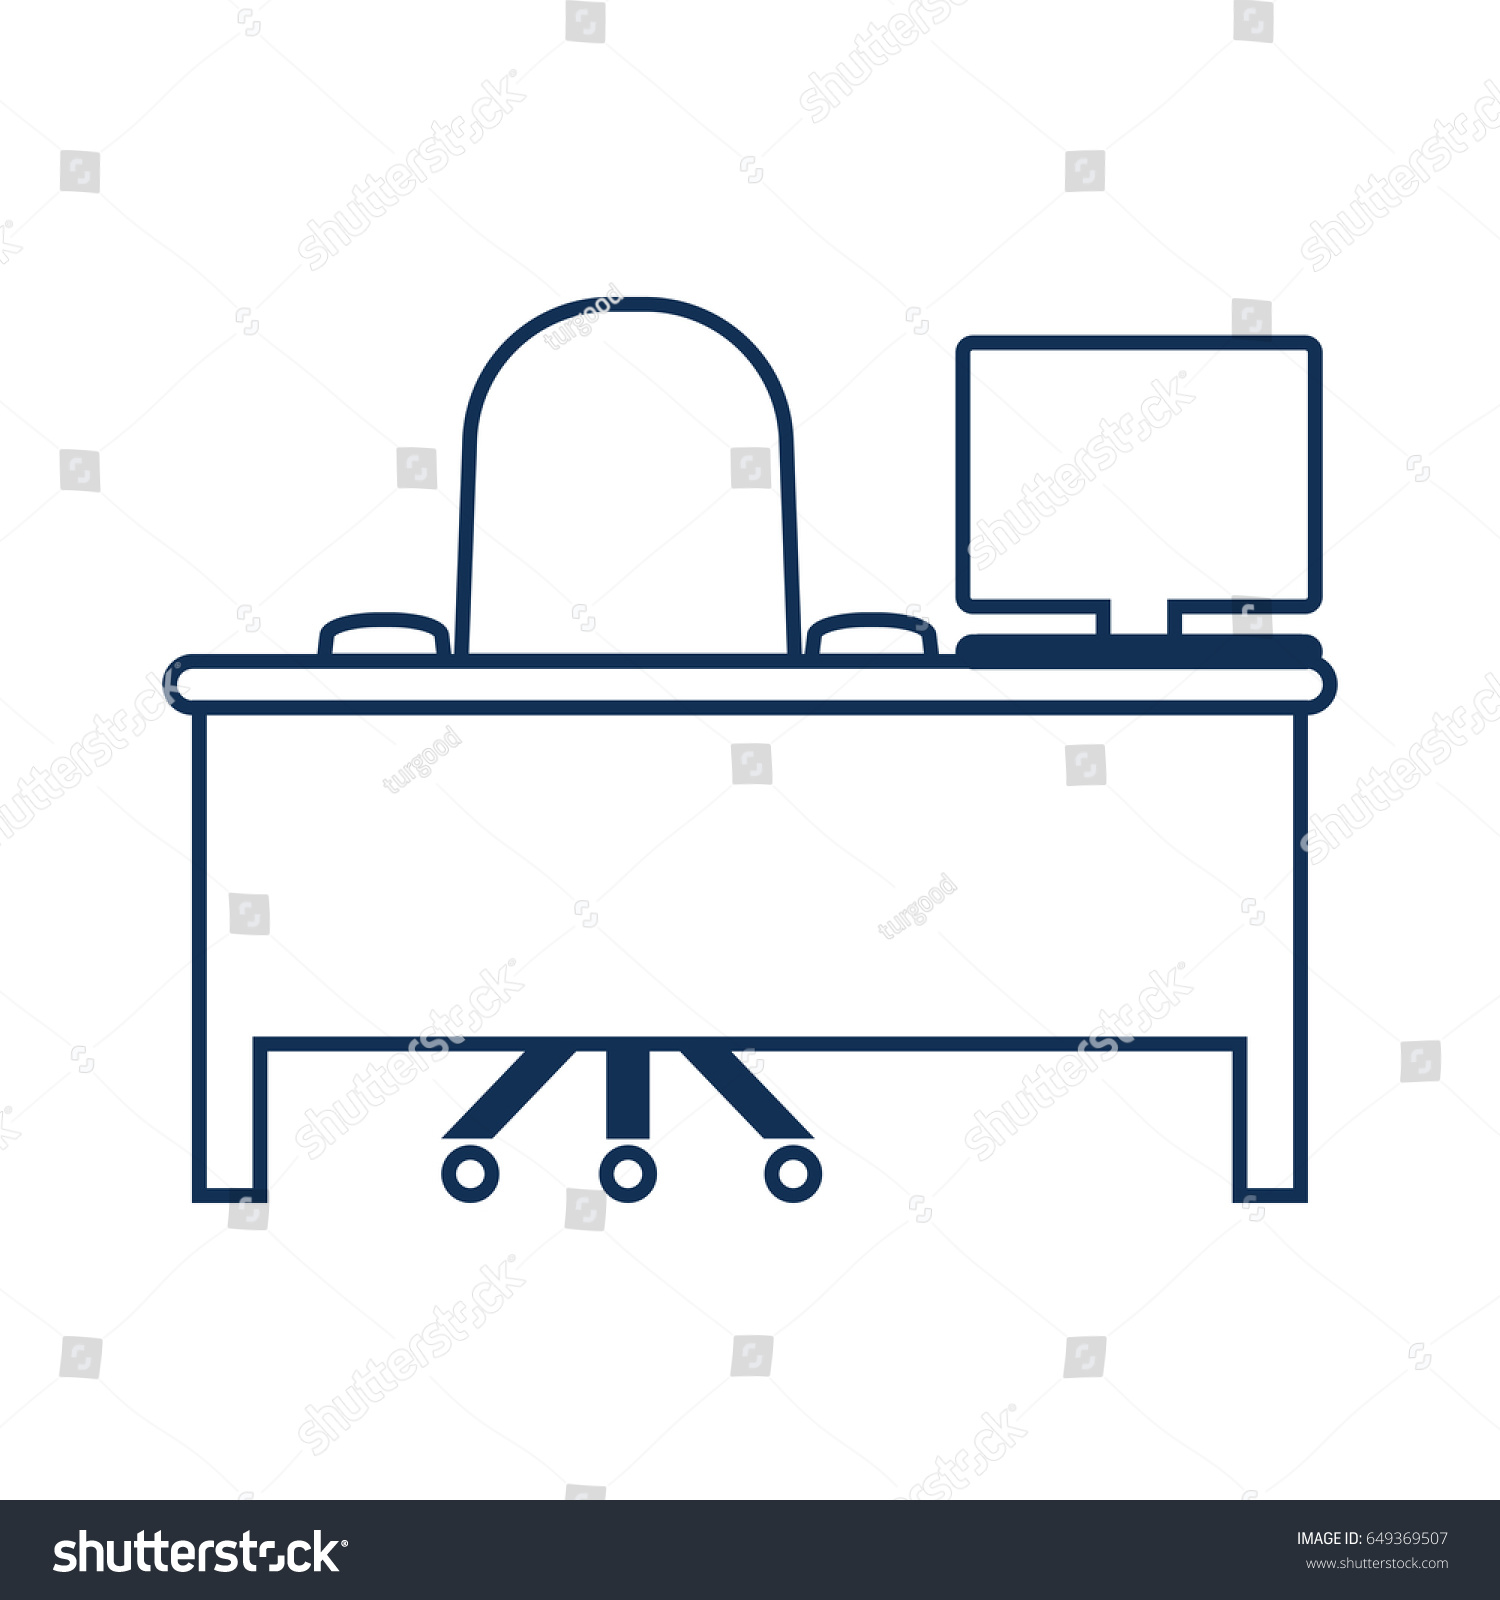 Symbol comfort workplace thin line icon stock vector 649369507 symbol of comfort workplace thin line icon of productivity and concentration stroke pictogram graphic biocorpaavc Image collections